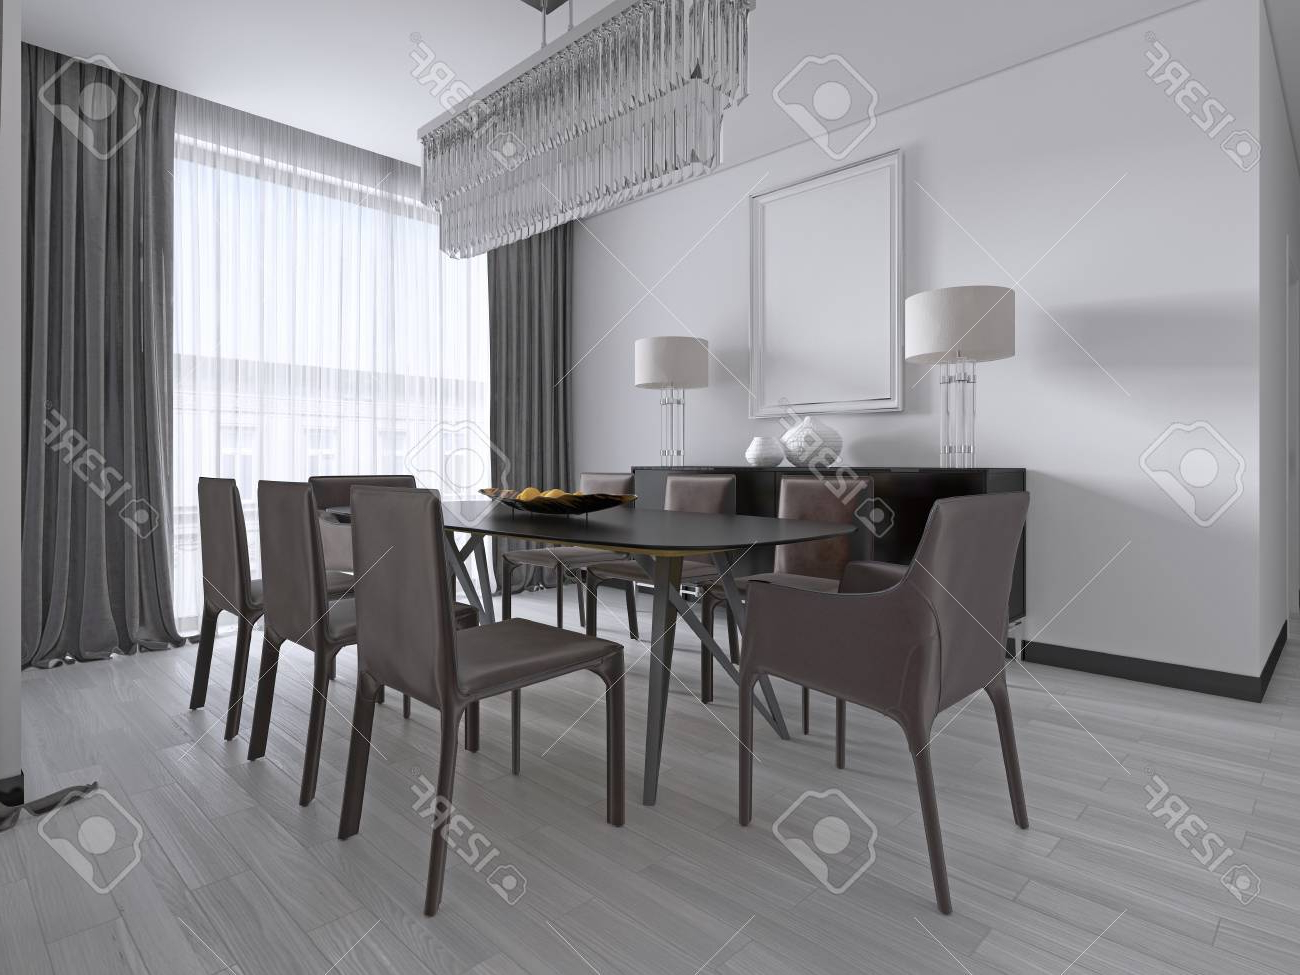 Latest Contemporary Rectangular Dining Tables Pertaining To Contemporary Dining Room With A Large Rectangular Dining Table. (View 8 of 25)